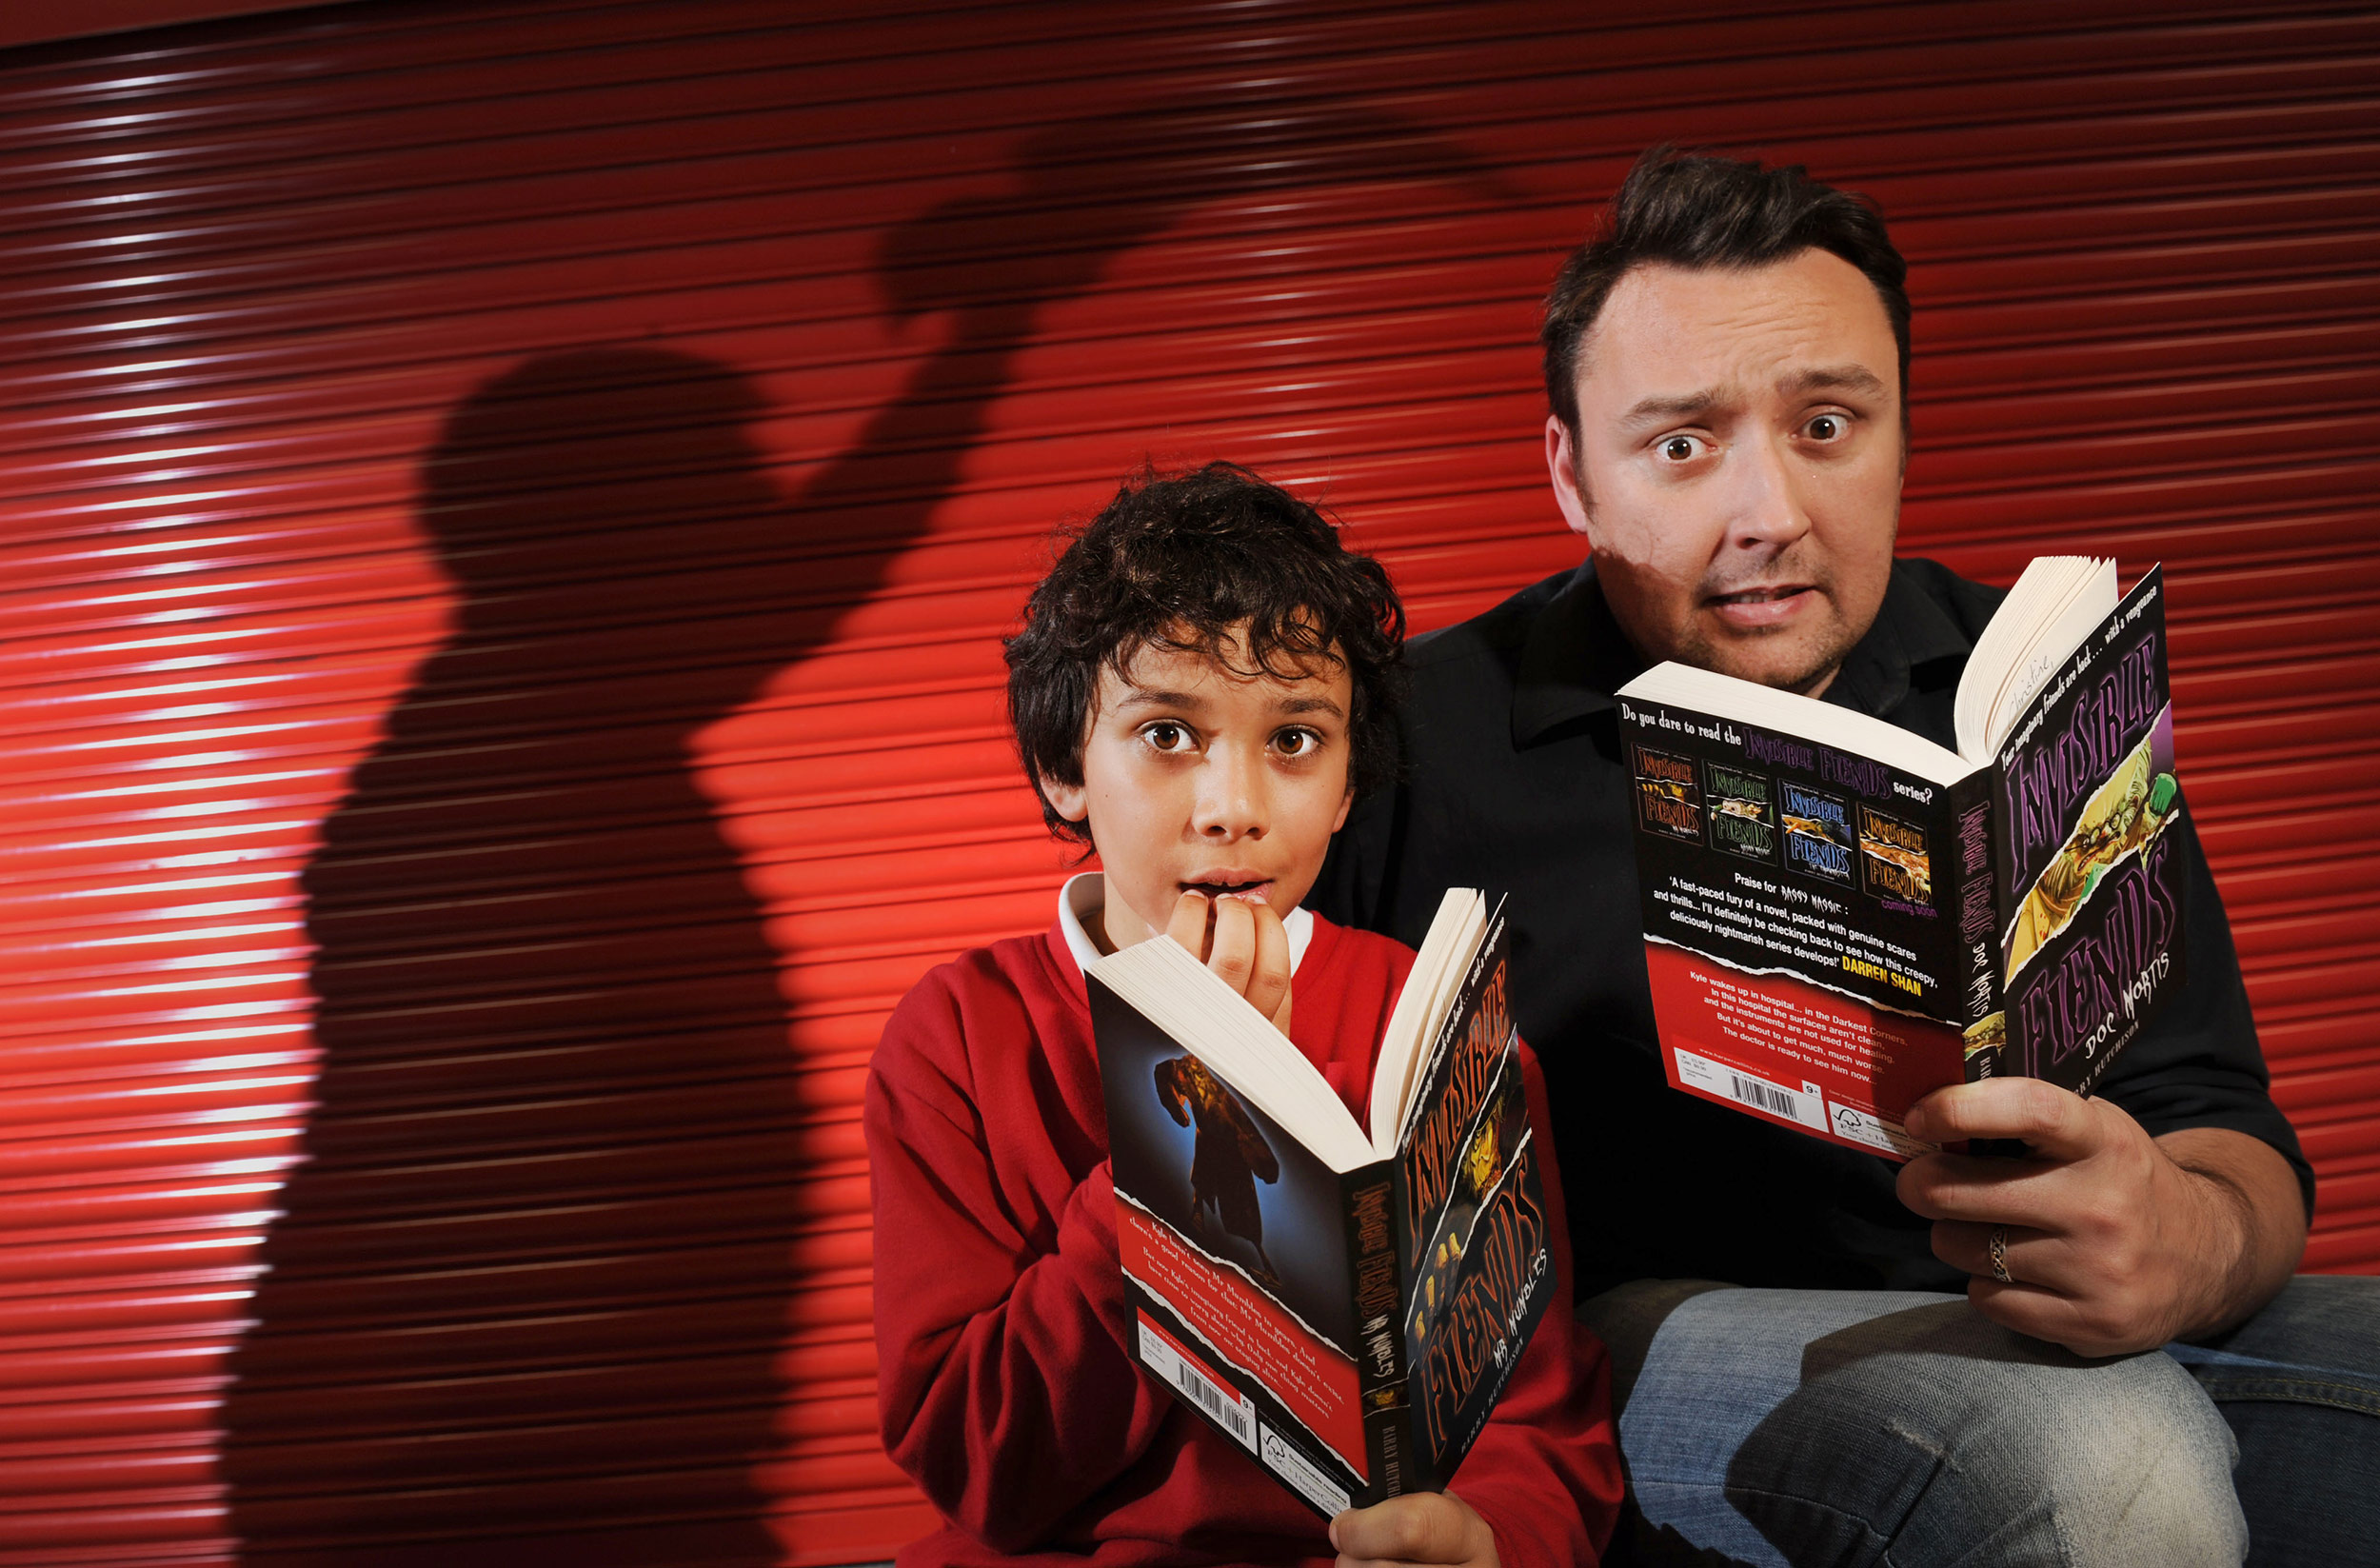 A writer visits a school in Manchester and poses for photographs with the children and his new book.